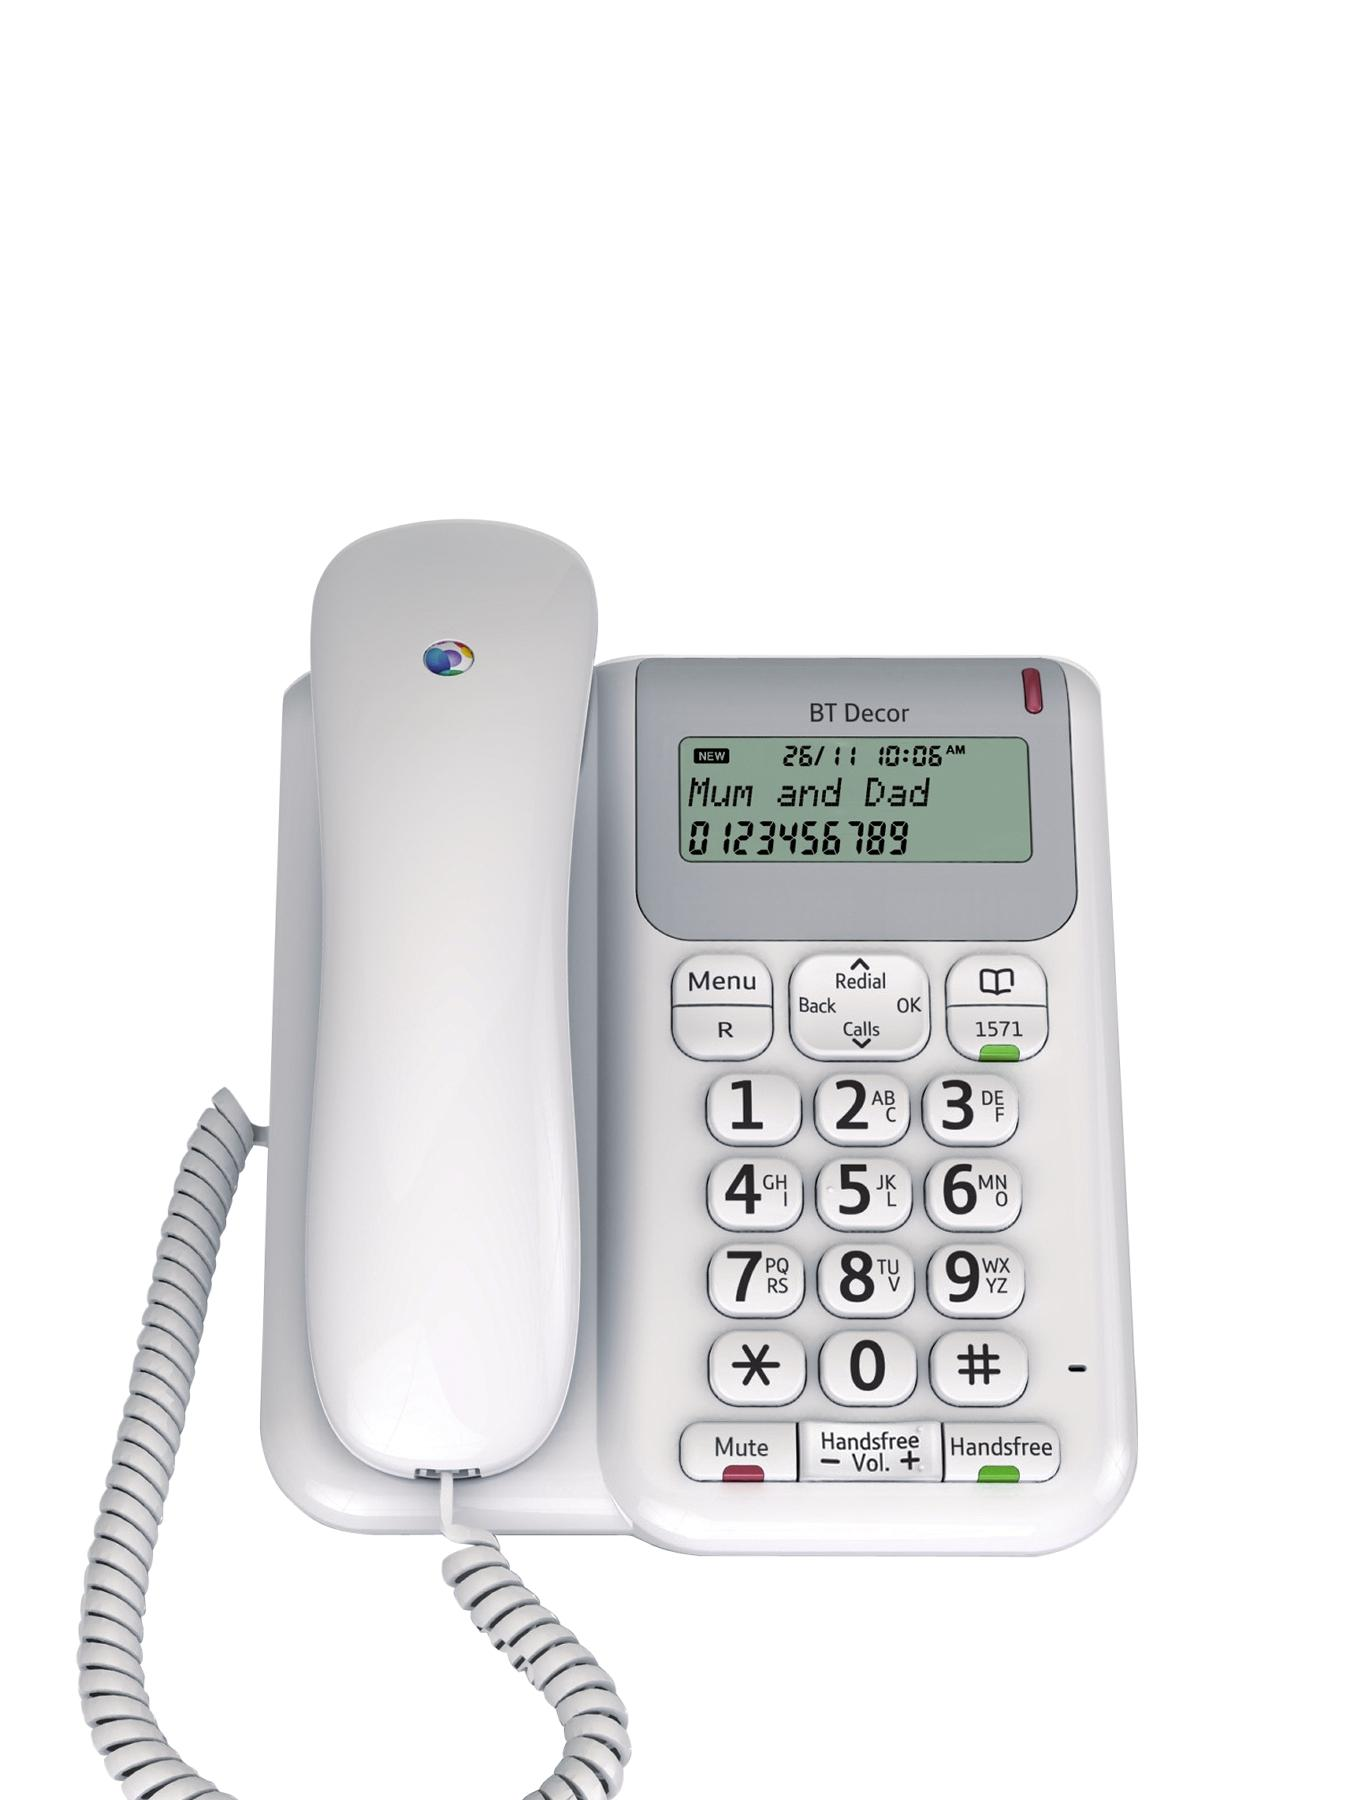 BT Decor 2200 Phone